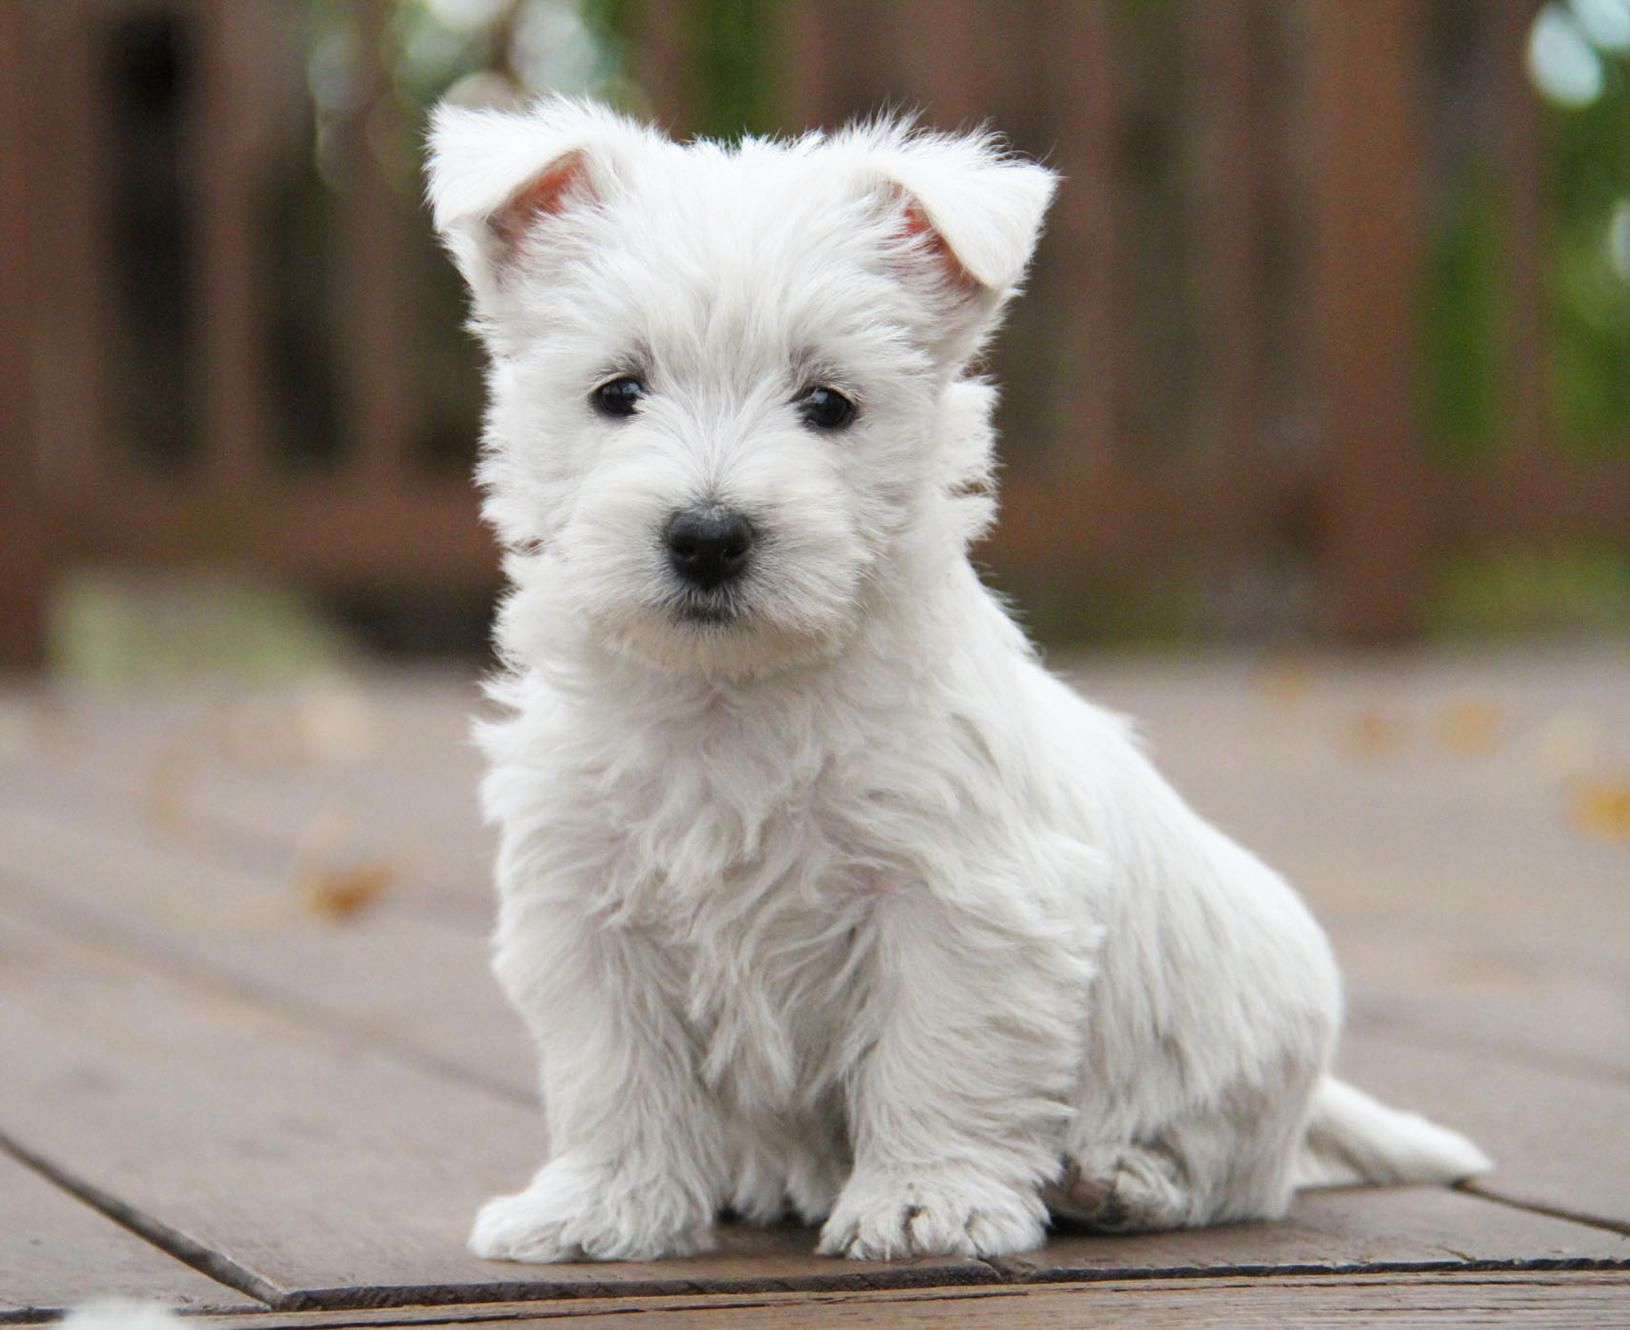 We've been raising Westies at The West Acres on our ranch